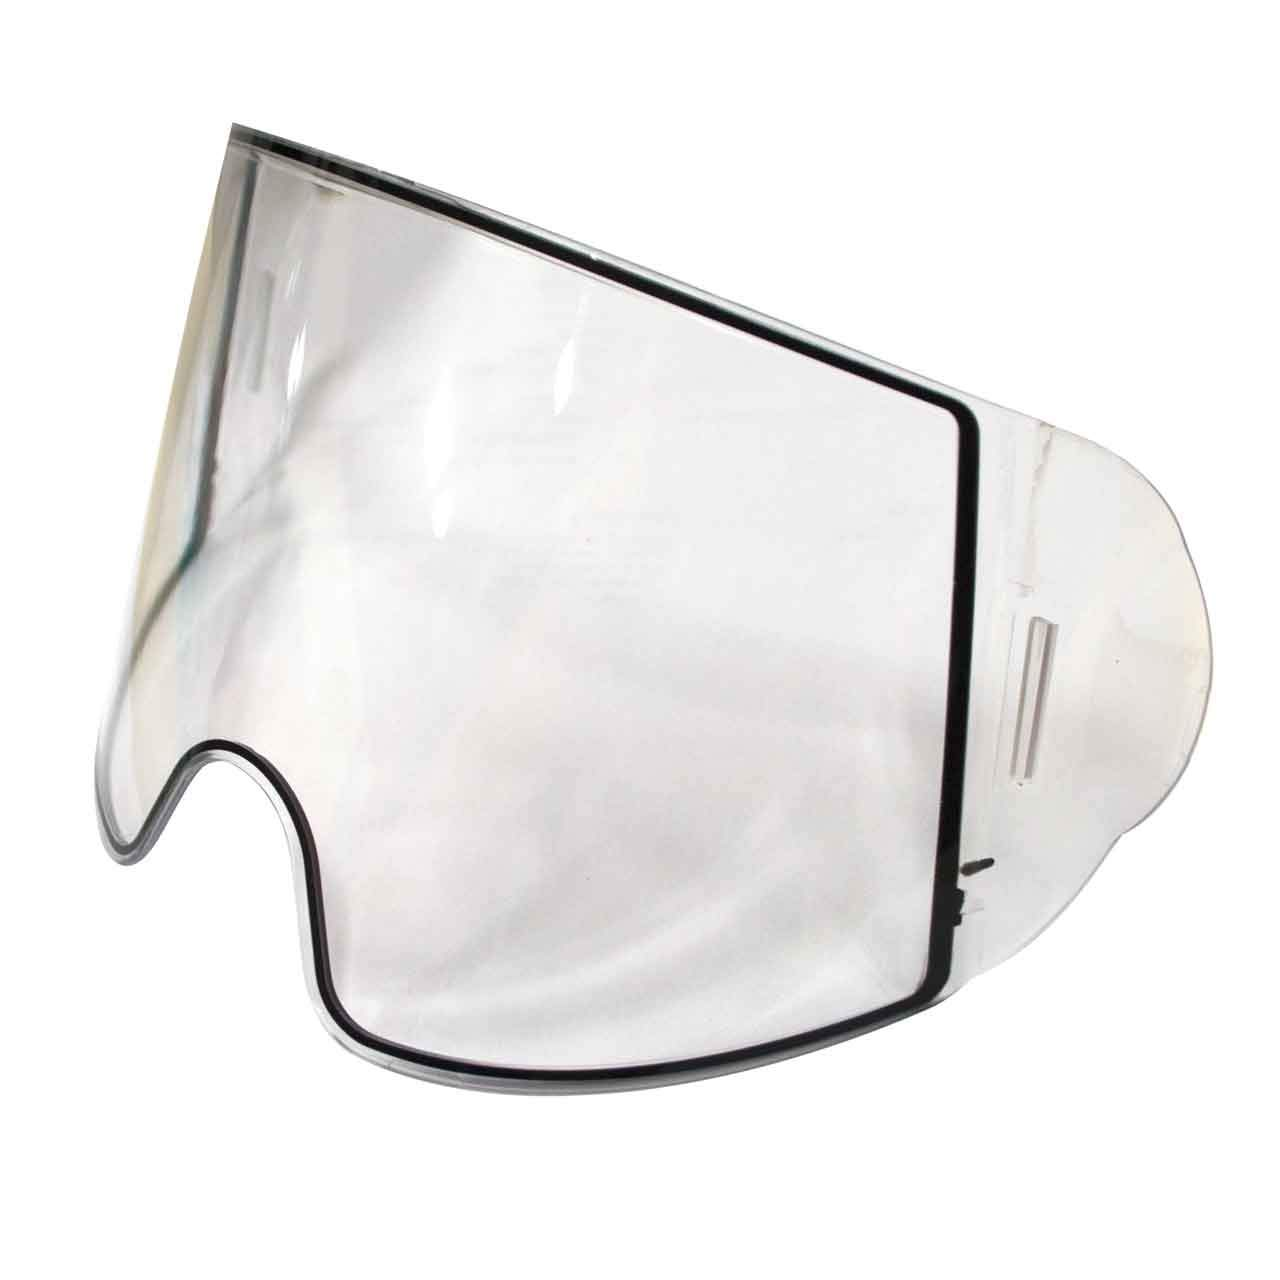 Optrel 5000.270 Front Cover Lens for Panoramaxx Helmet | PKG = 5